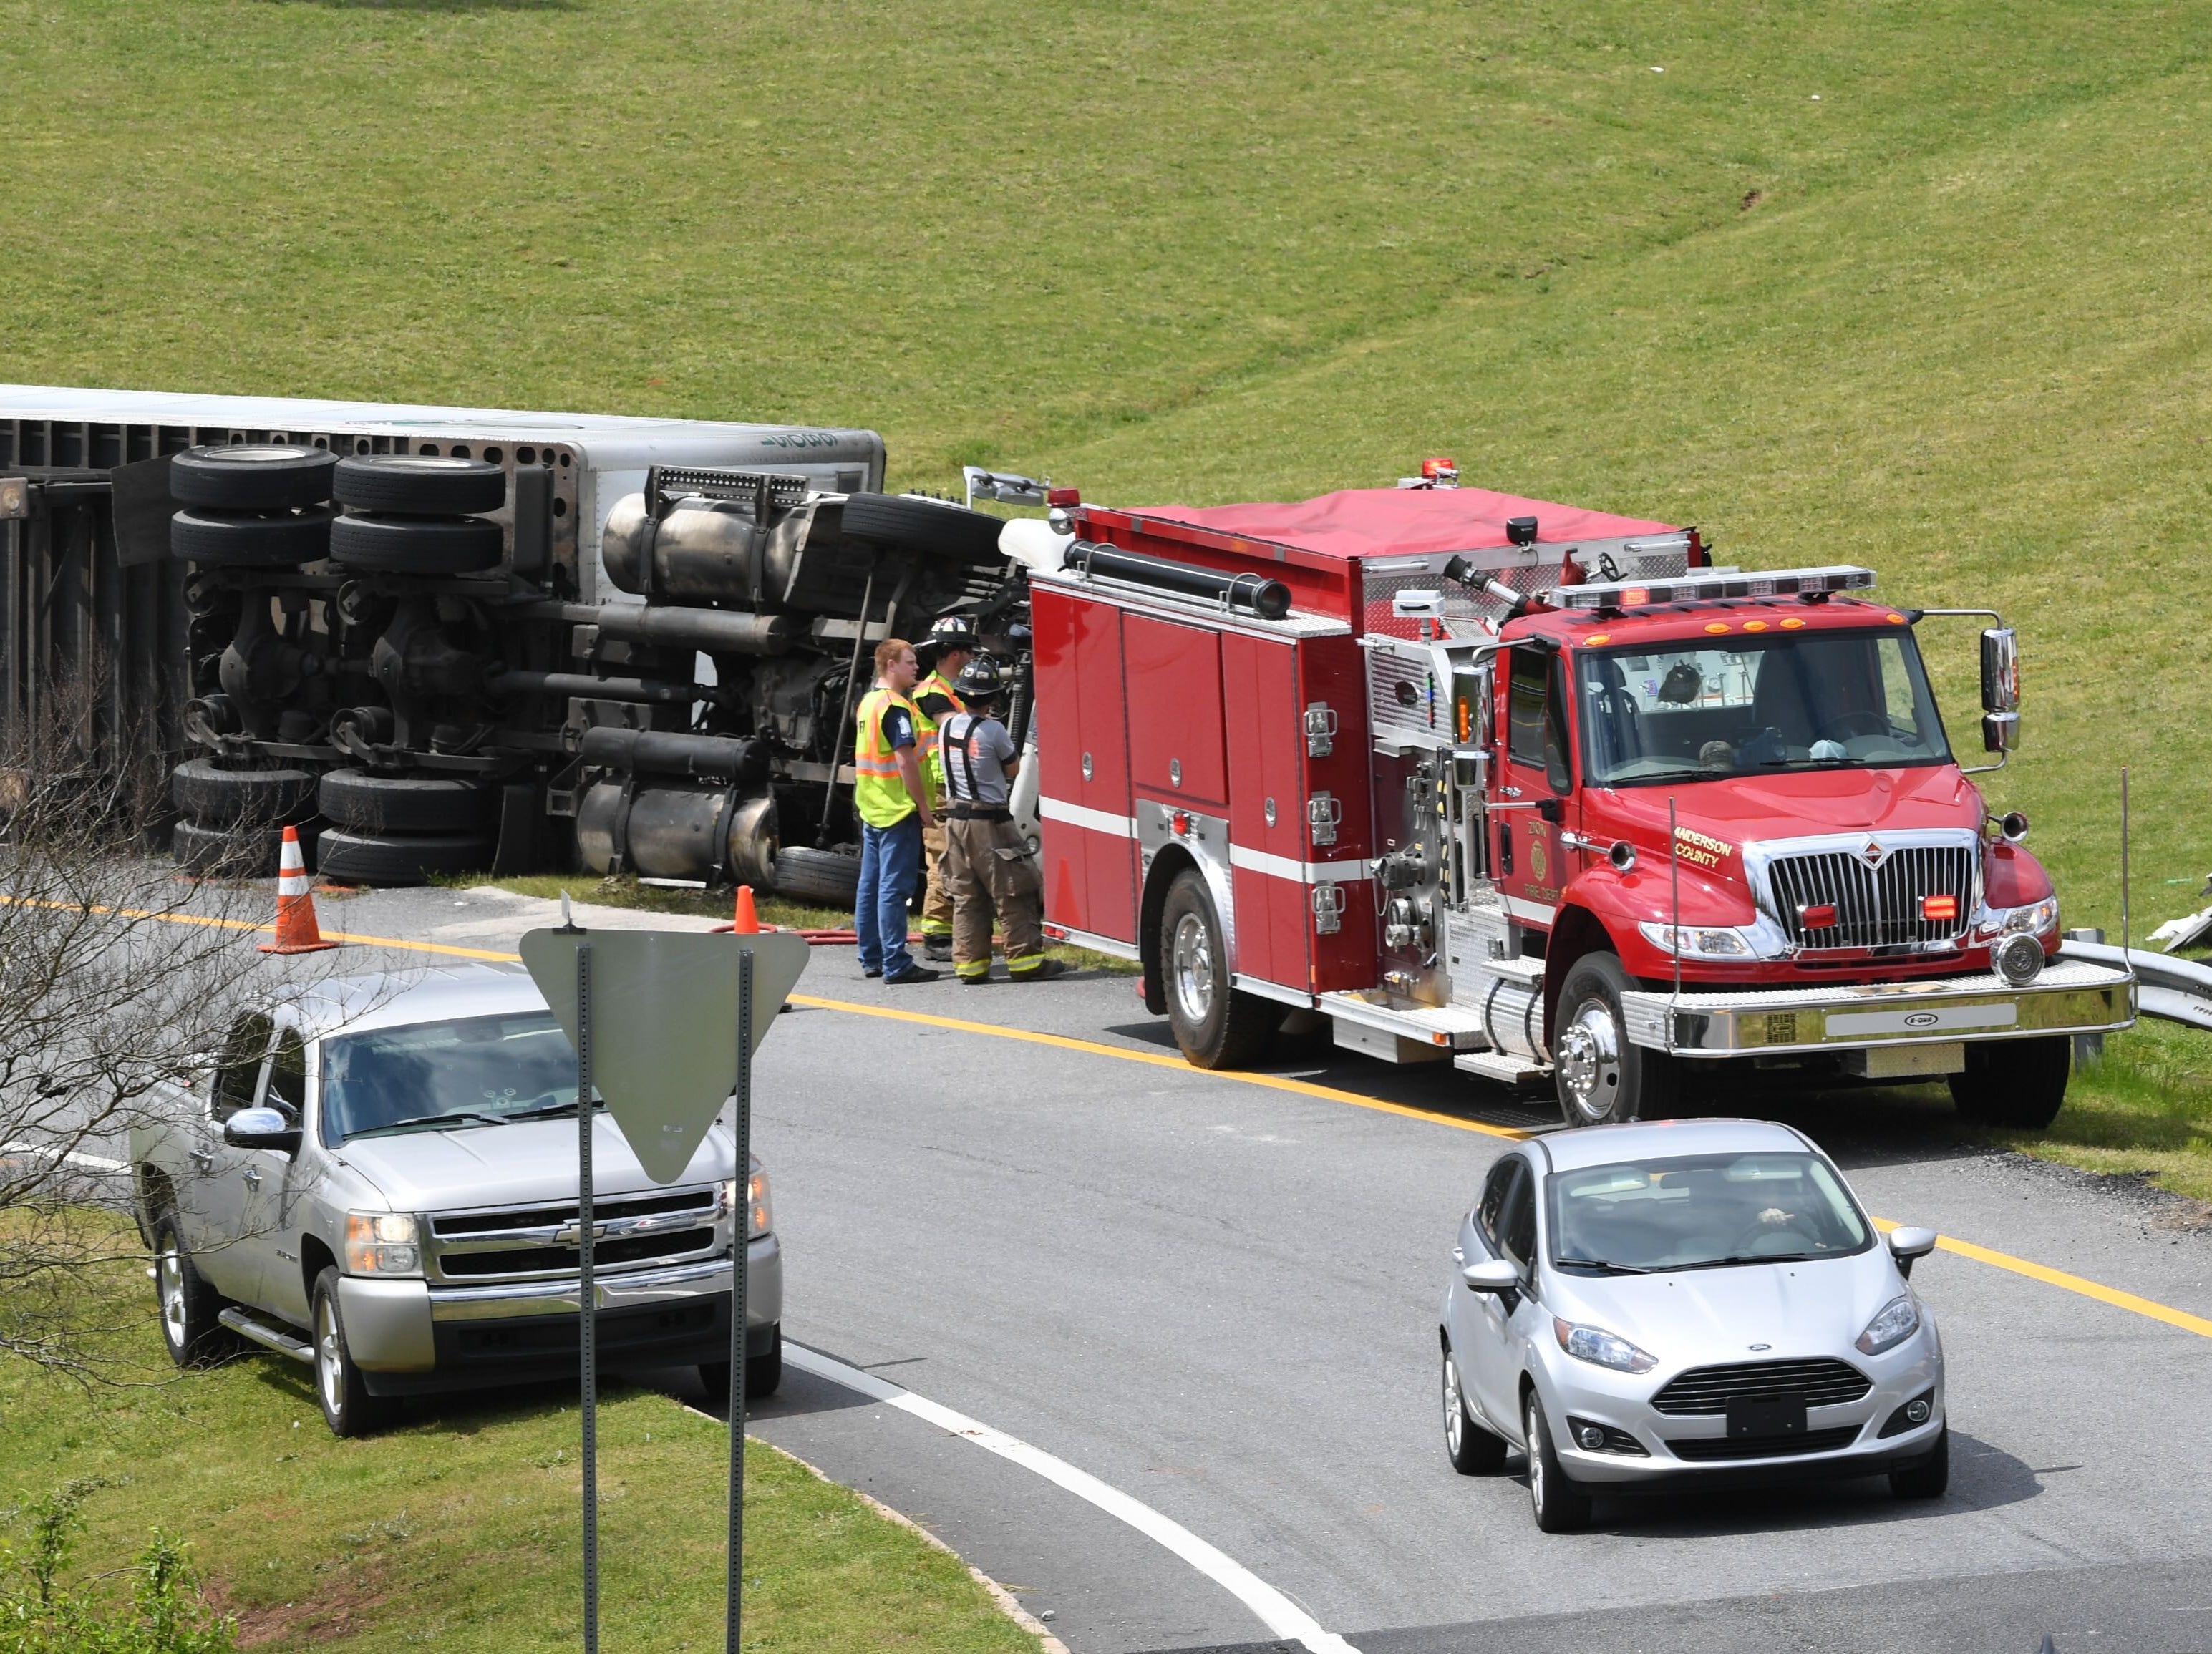 A crash involving a tractor-trailer blocks Interstate 85 ramp near Clemson Boulevard in Anderson County on Tuesday, March 26, 2019.